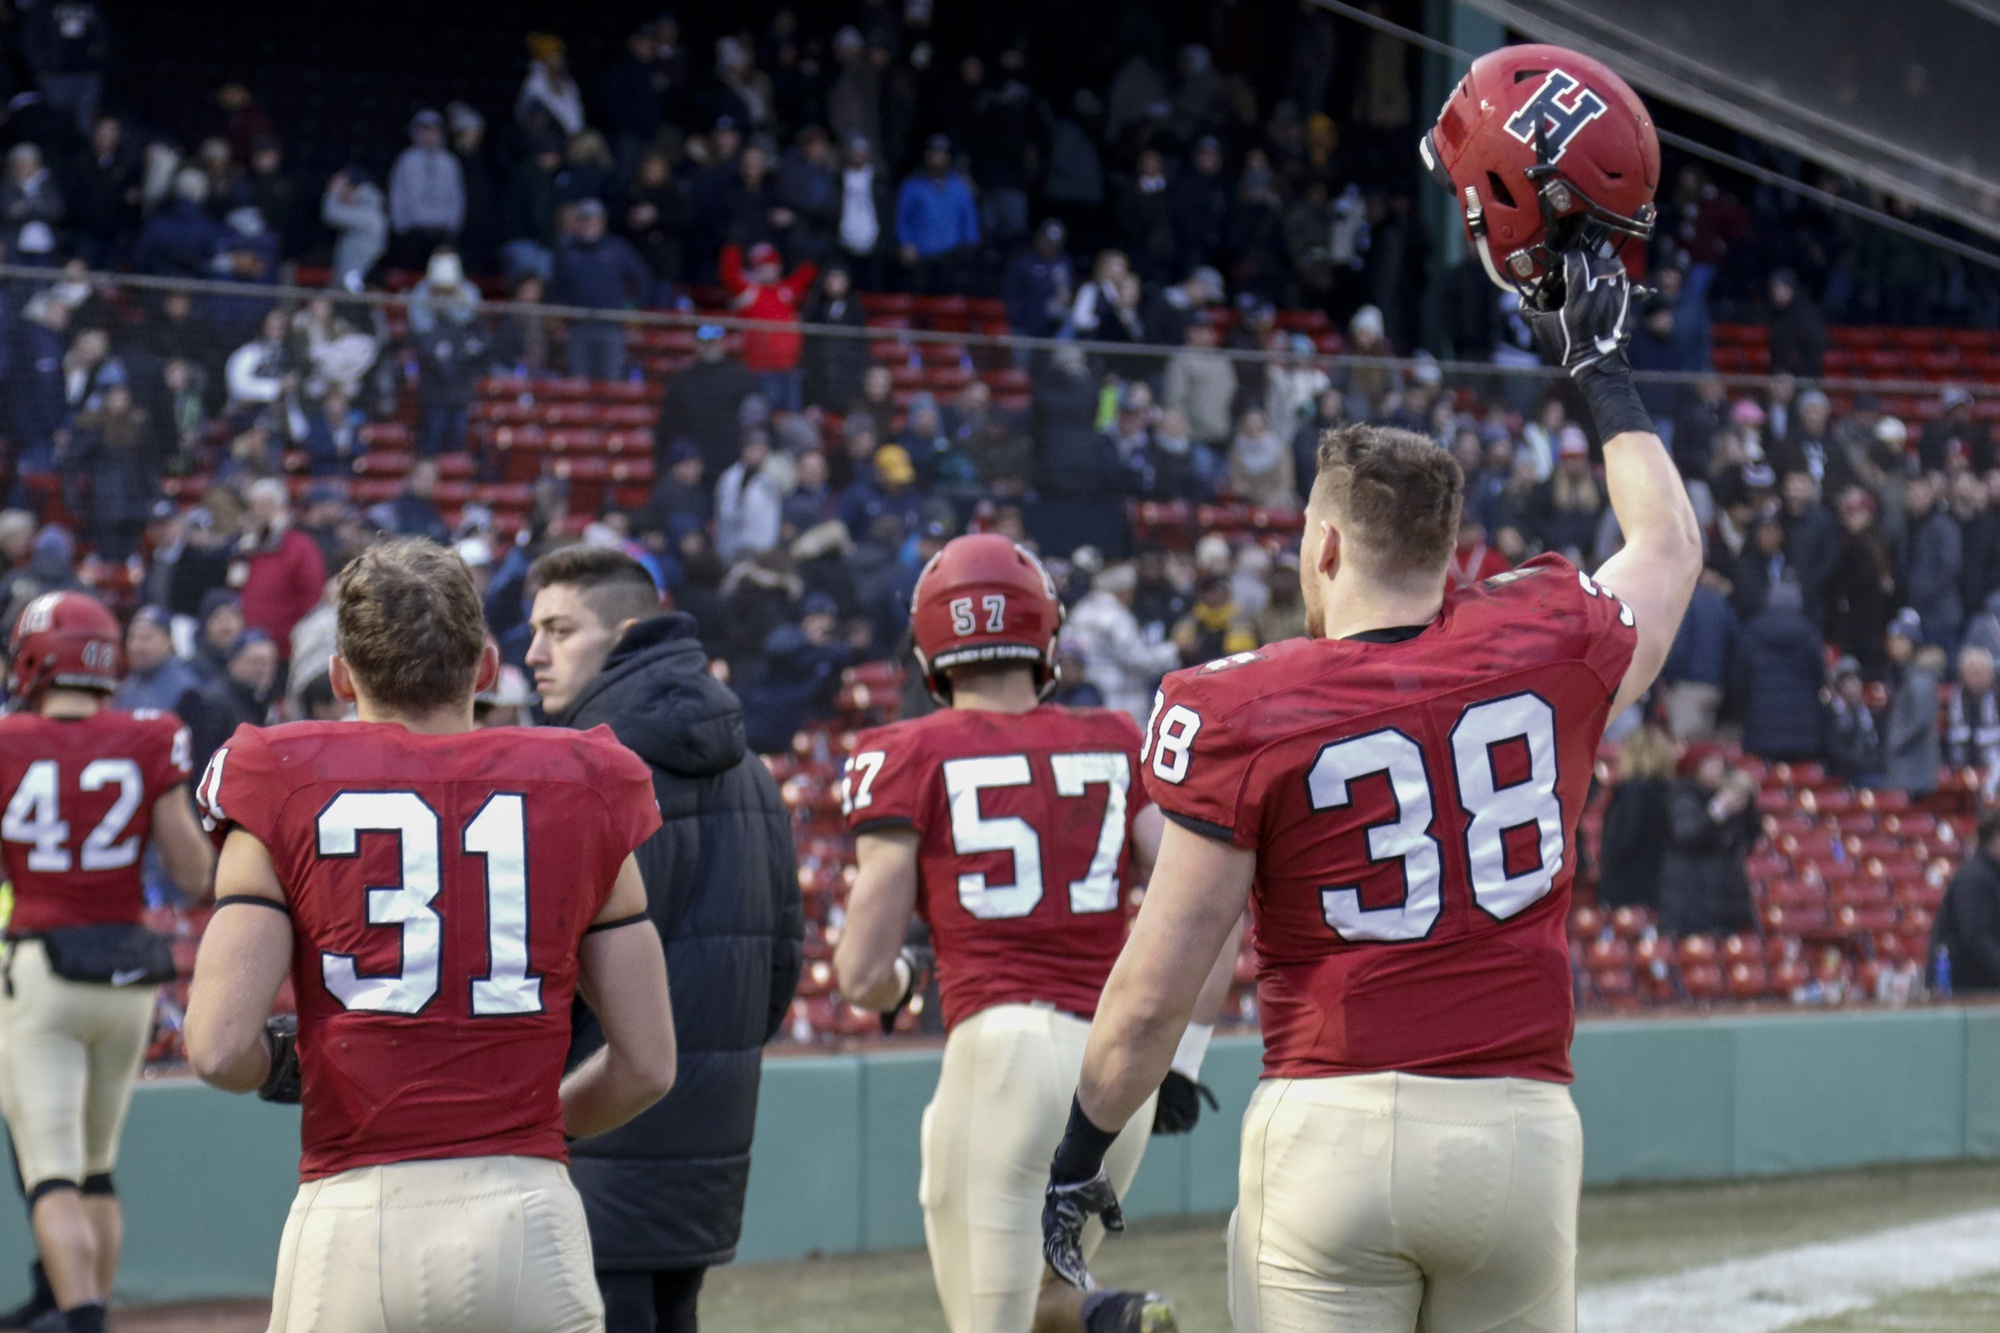 At the end of his final game in a Harvard uniform, senior defensive lineman Alex White saluted the crowd.